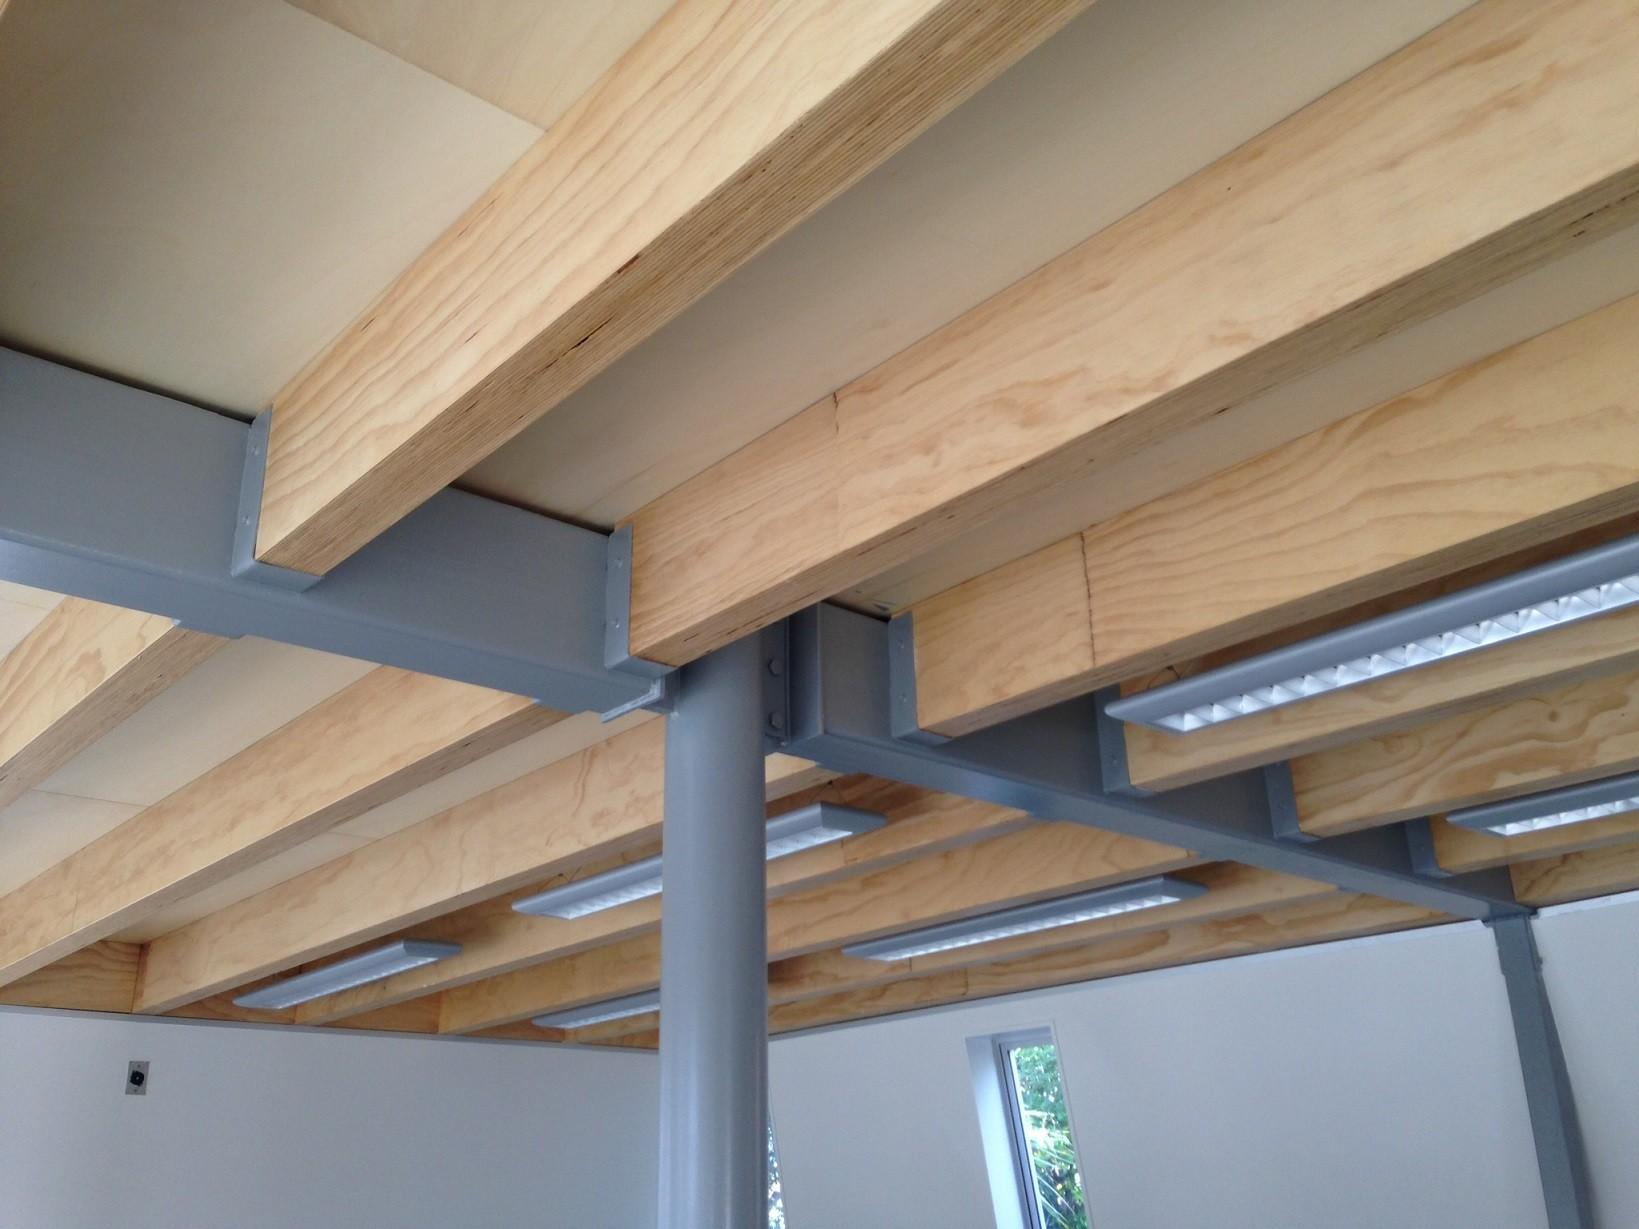 Built Lvl Attractive Option Exposed Joists